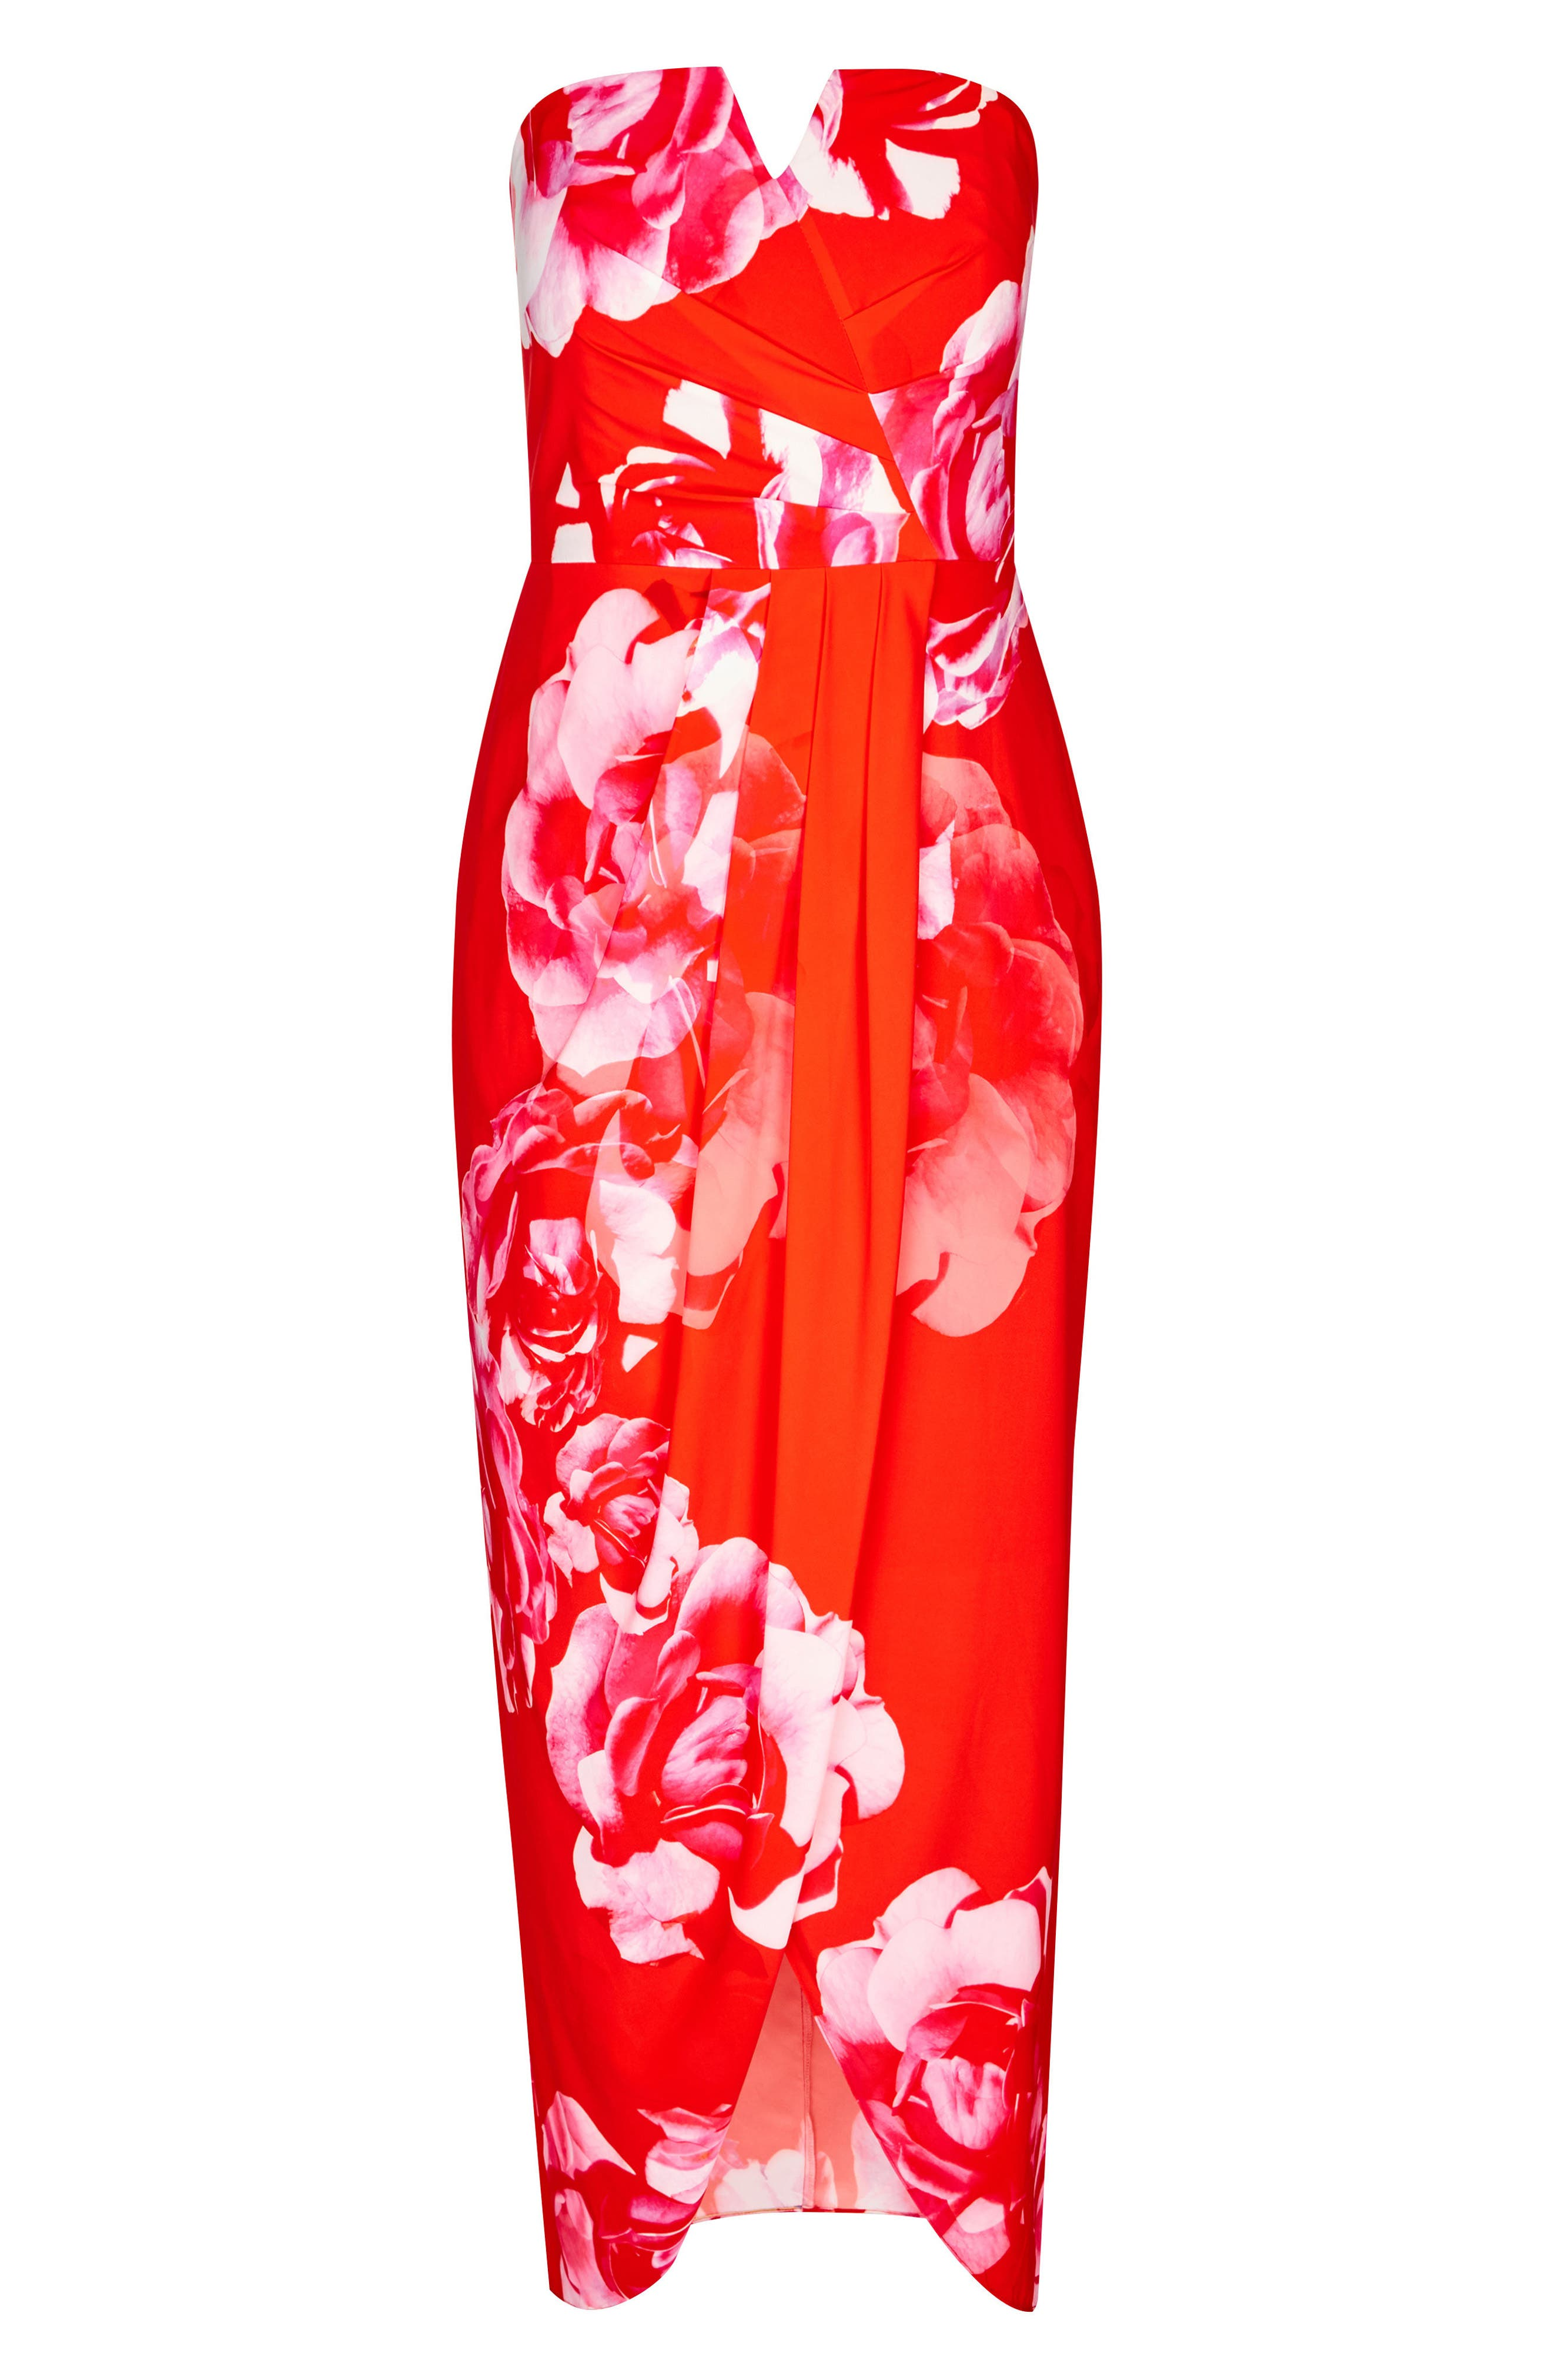 Tango Floral Strapless Maxi Dress,                             Alternate thumbnail 5, color,                             TANGO FLORAL